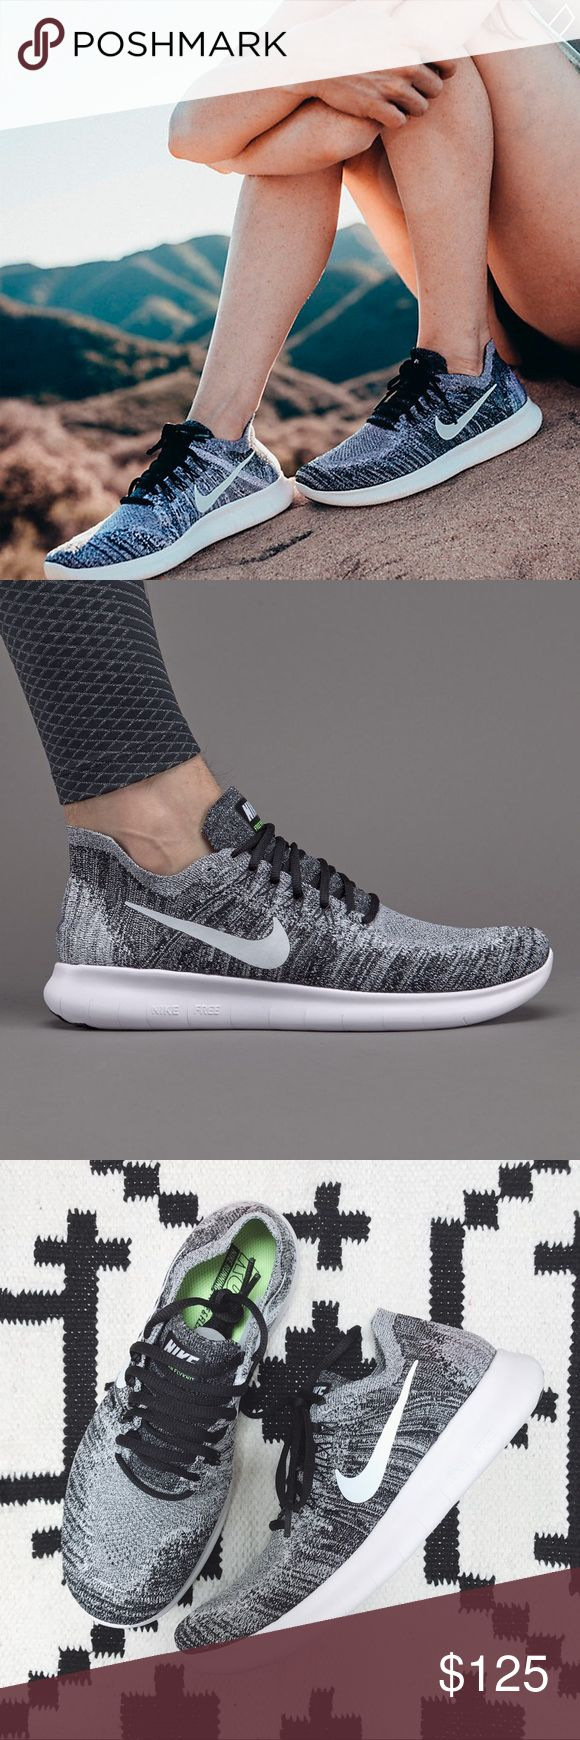 Nike Oreo Free RN Flyknit Sneakers •Oreo Flyknit Sneakers  •Women's size 8, true to size.  •New in box, no lid.  •No trades. No holds. Nike Shoes Sneakers